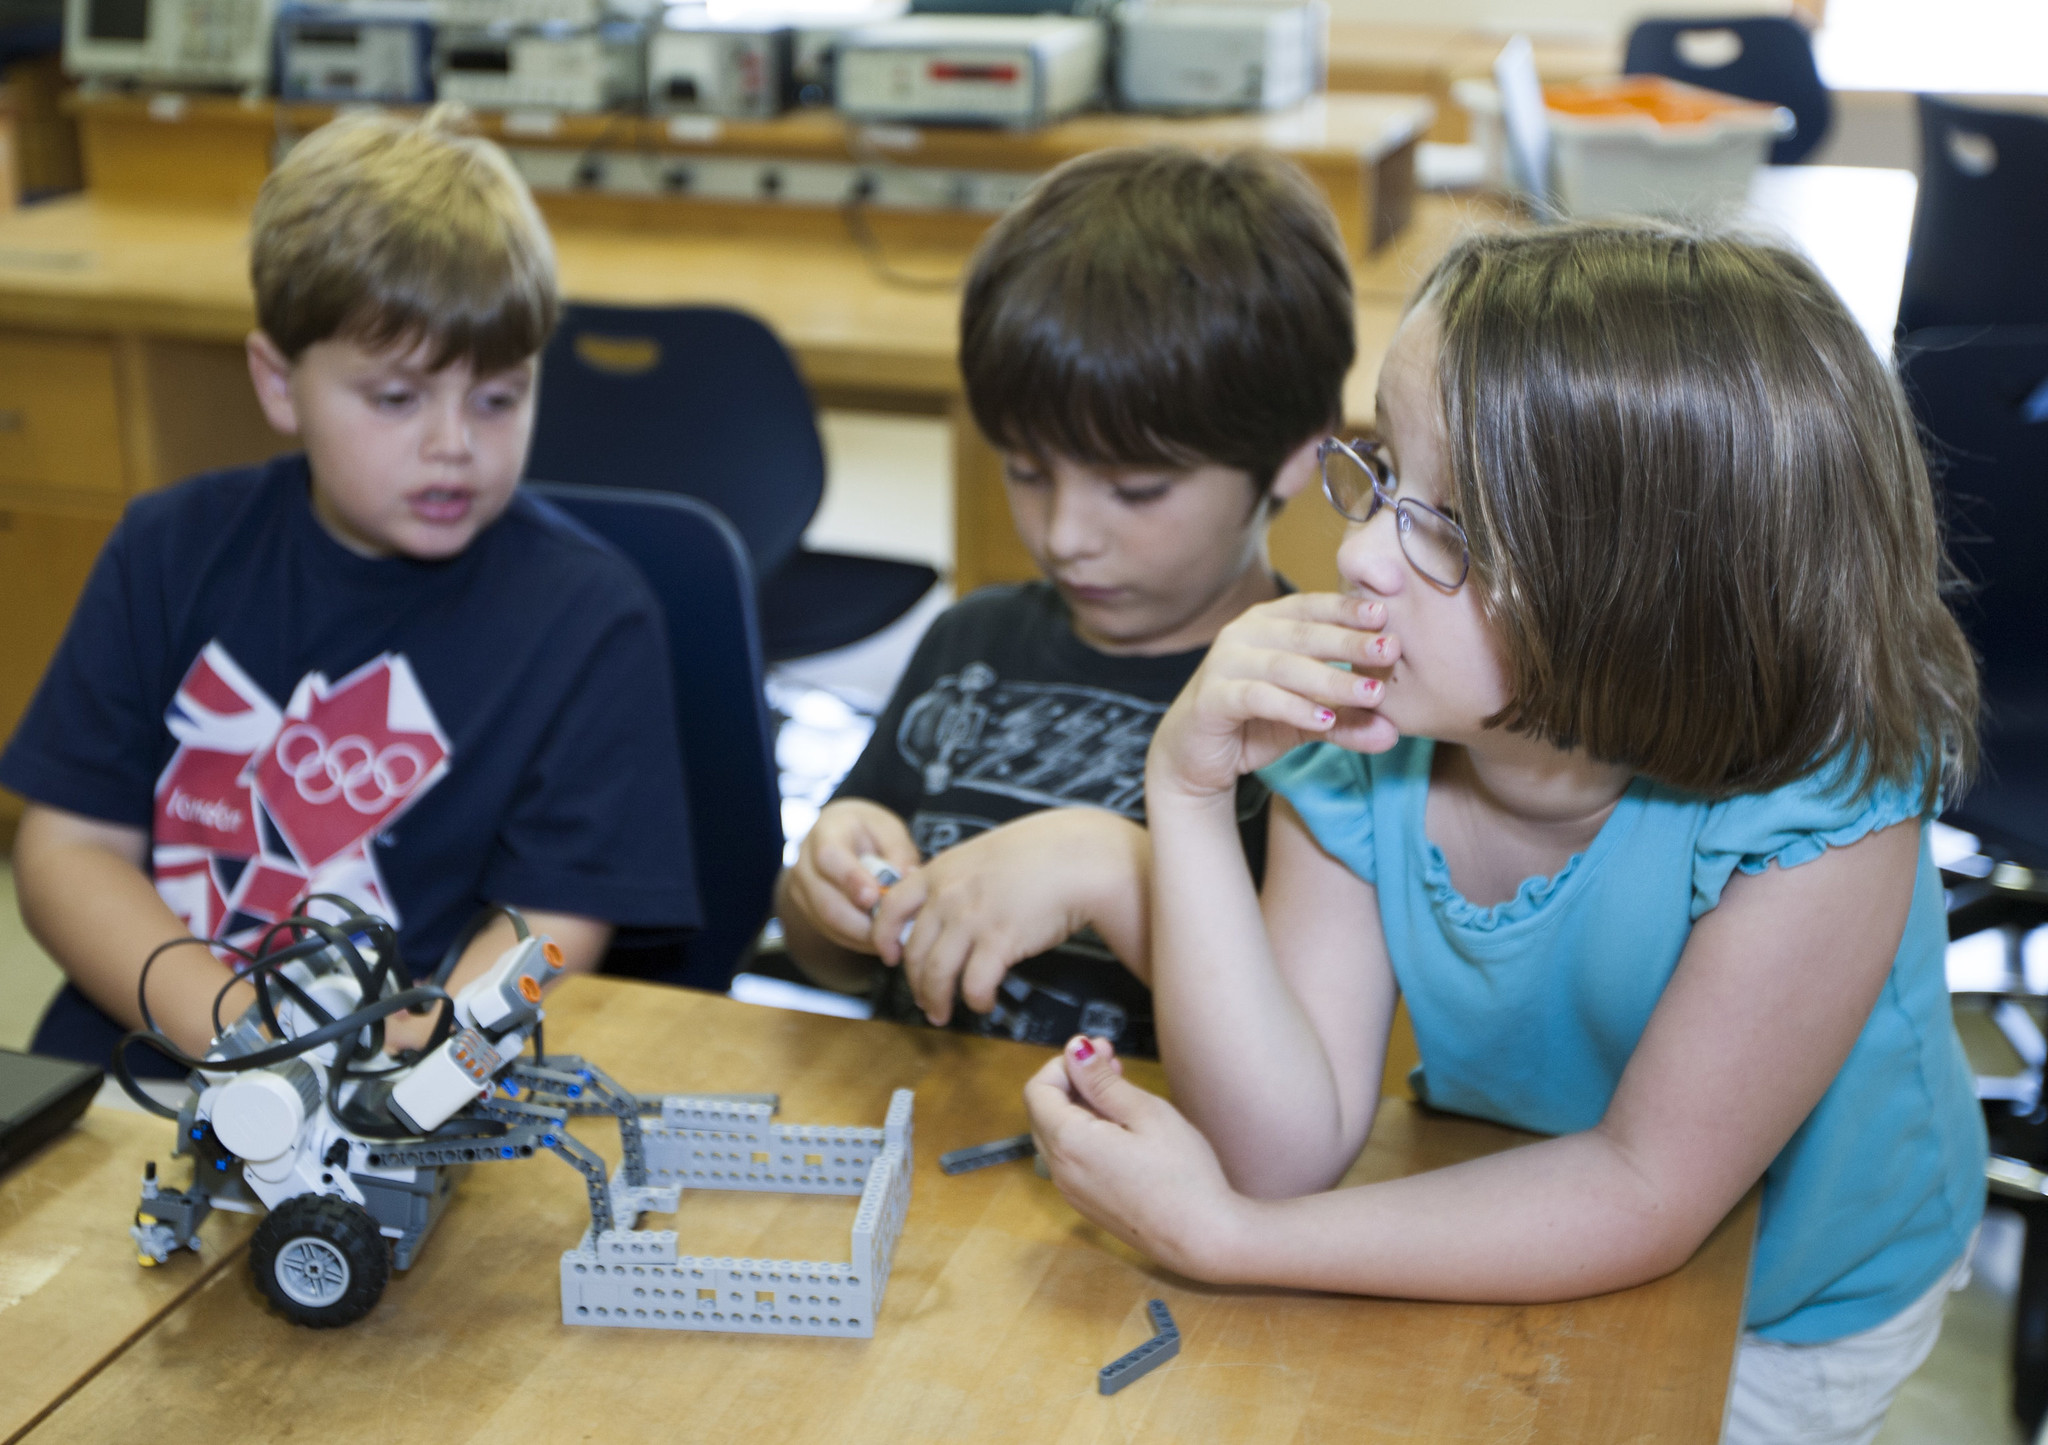 Best Robotics courses for children